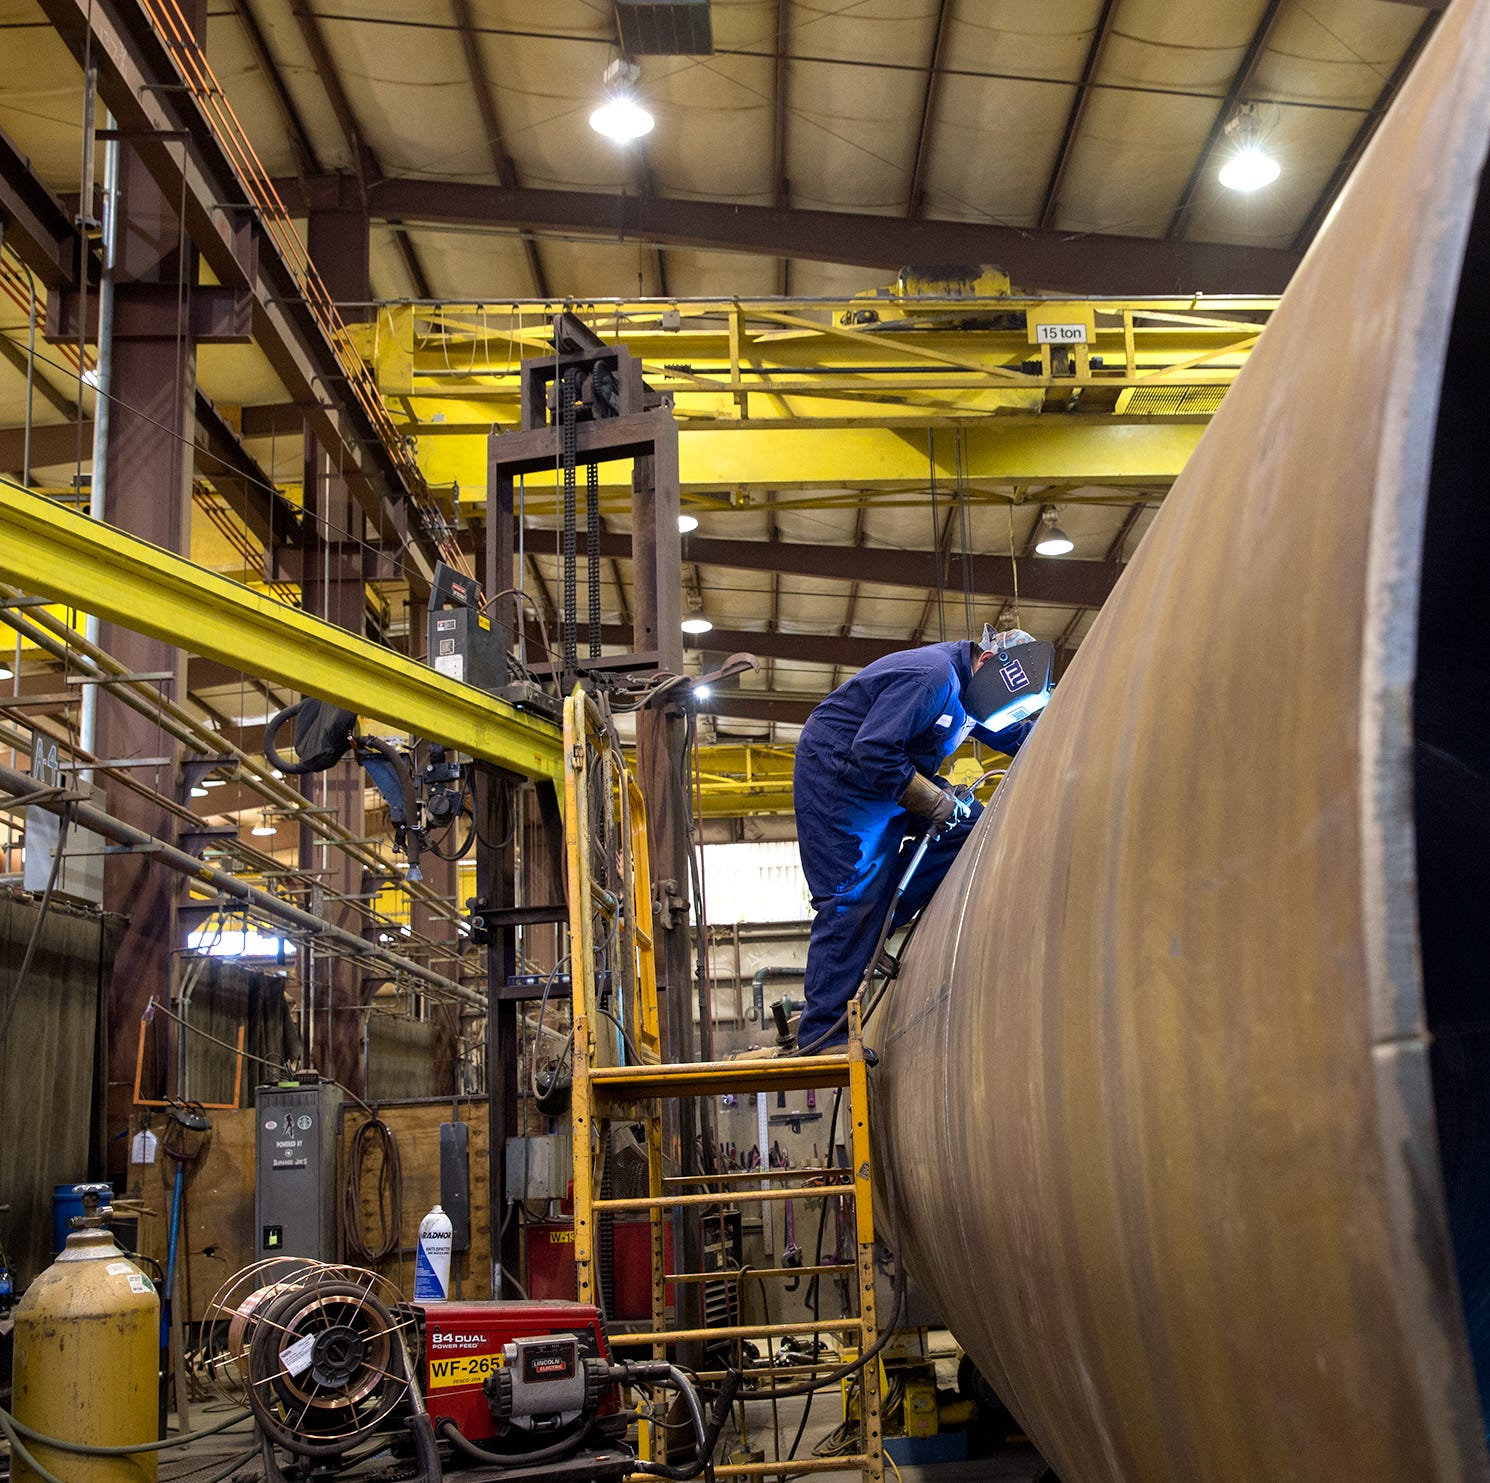 PESCO partners with Albuquerque-based chemical reactor company